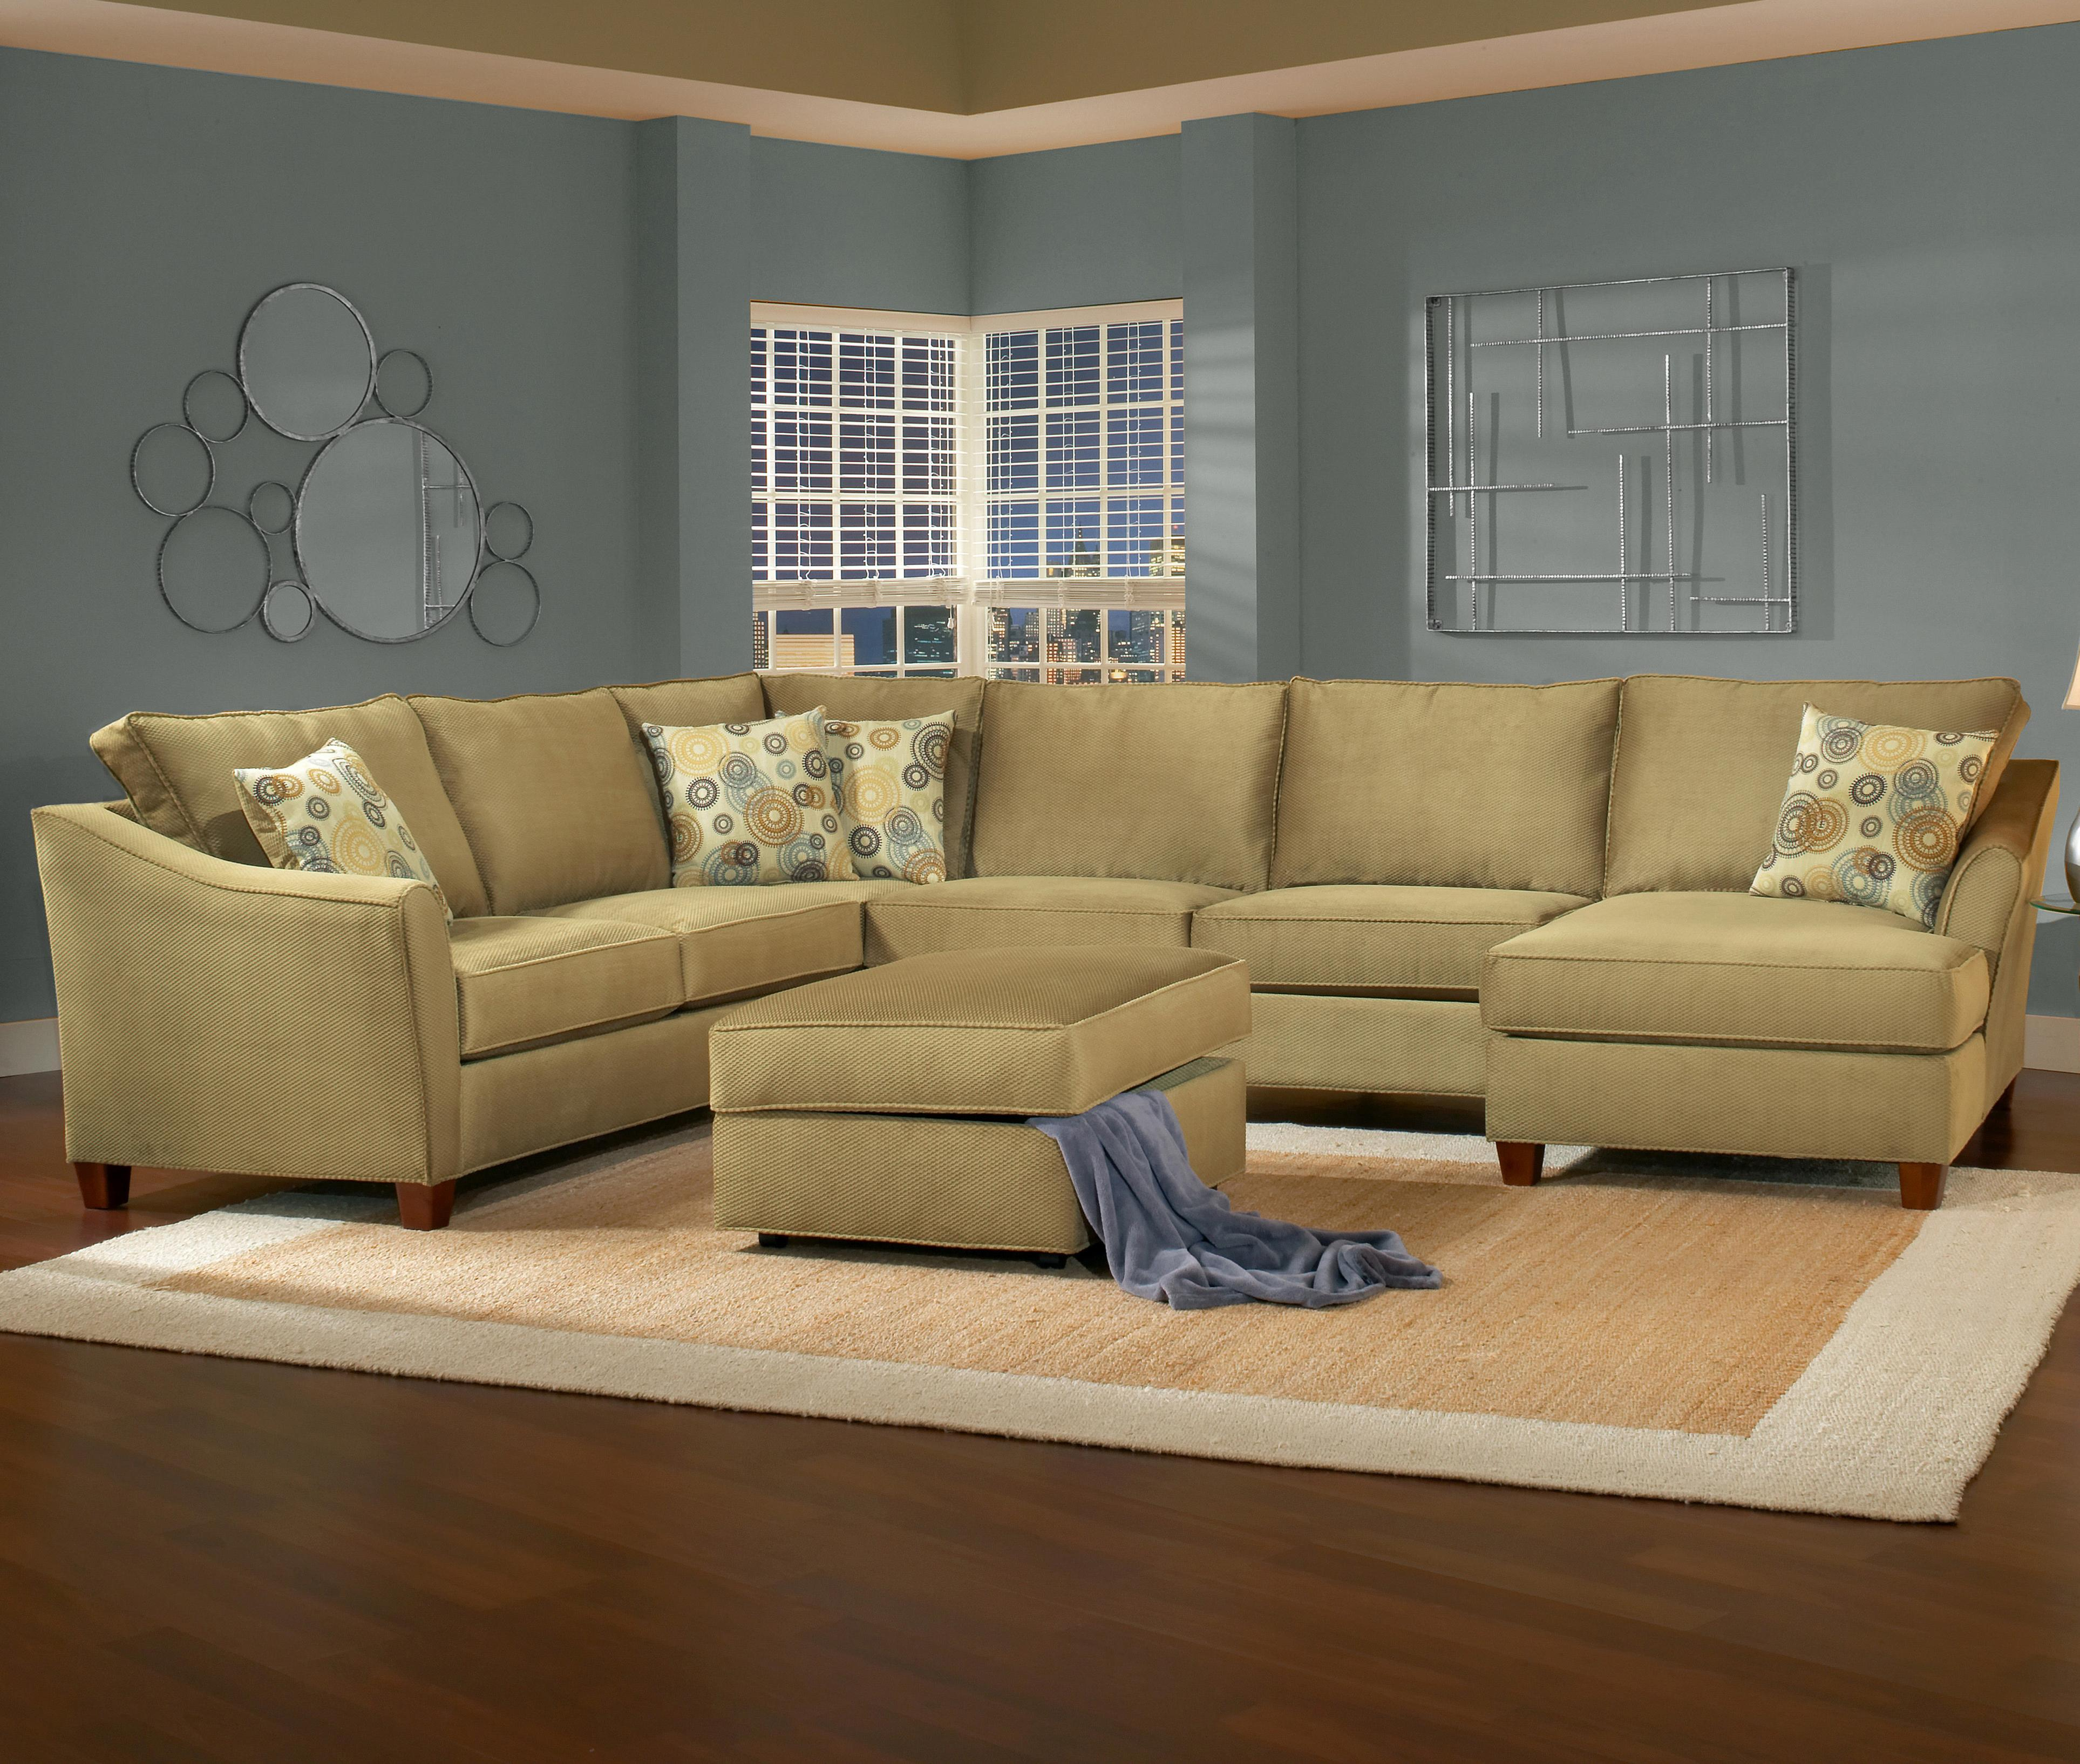 Belfort Essentials Fleetwood 6 Seat Sectional with Right Facing Chaise - Item Number: 5700-30L+10C+30A+24R